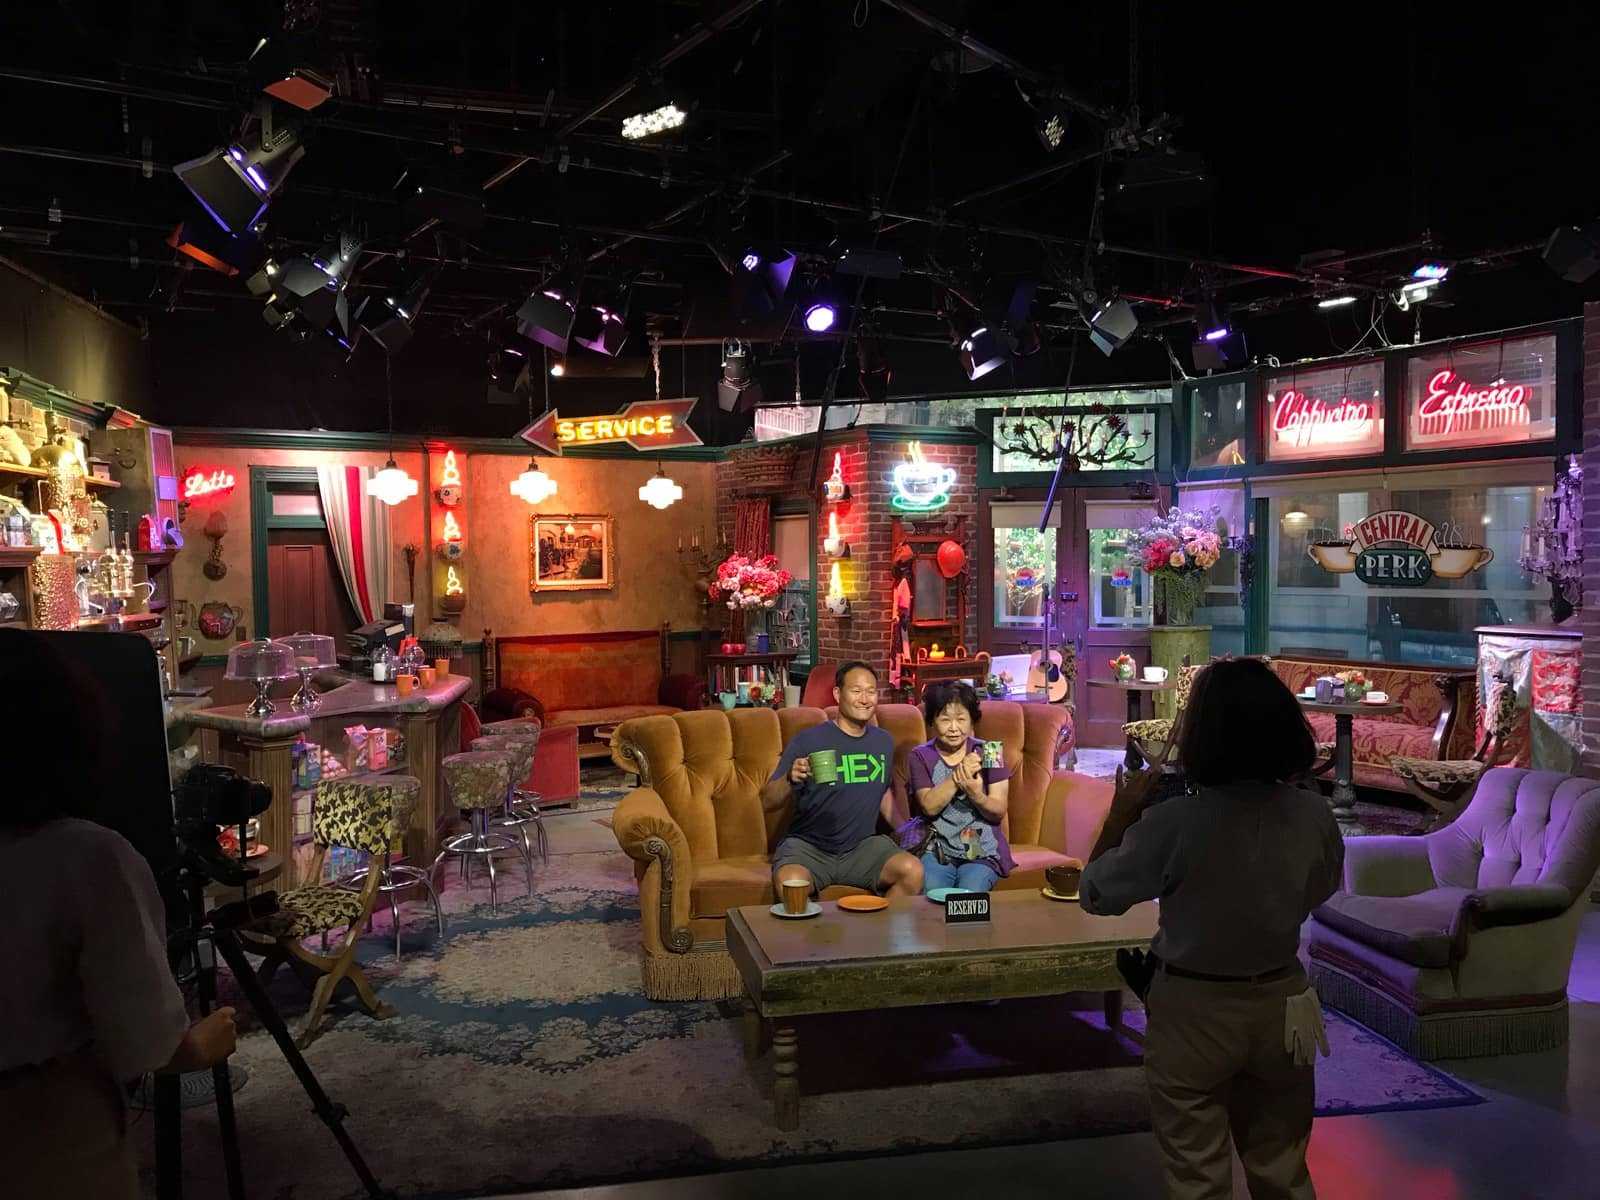 A television stage set with various props and neon signs. In the centre of frame is a large old couch with two people sitting in it, posed for a photo